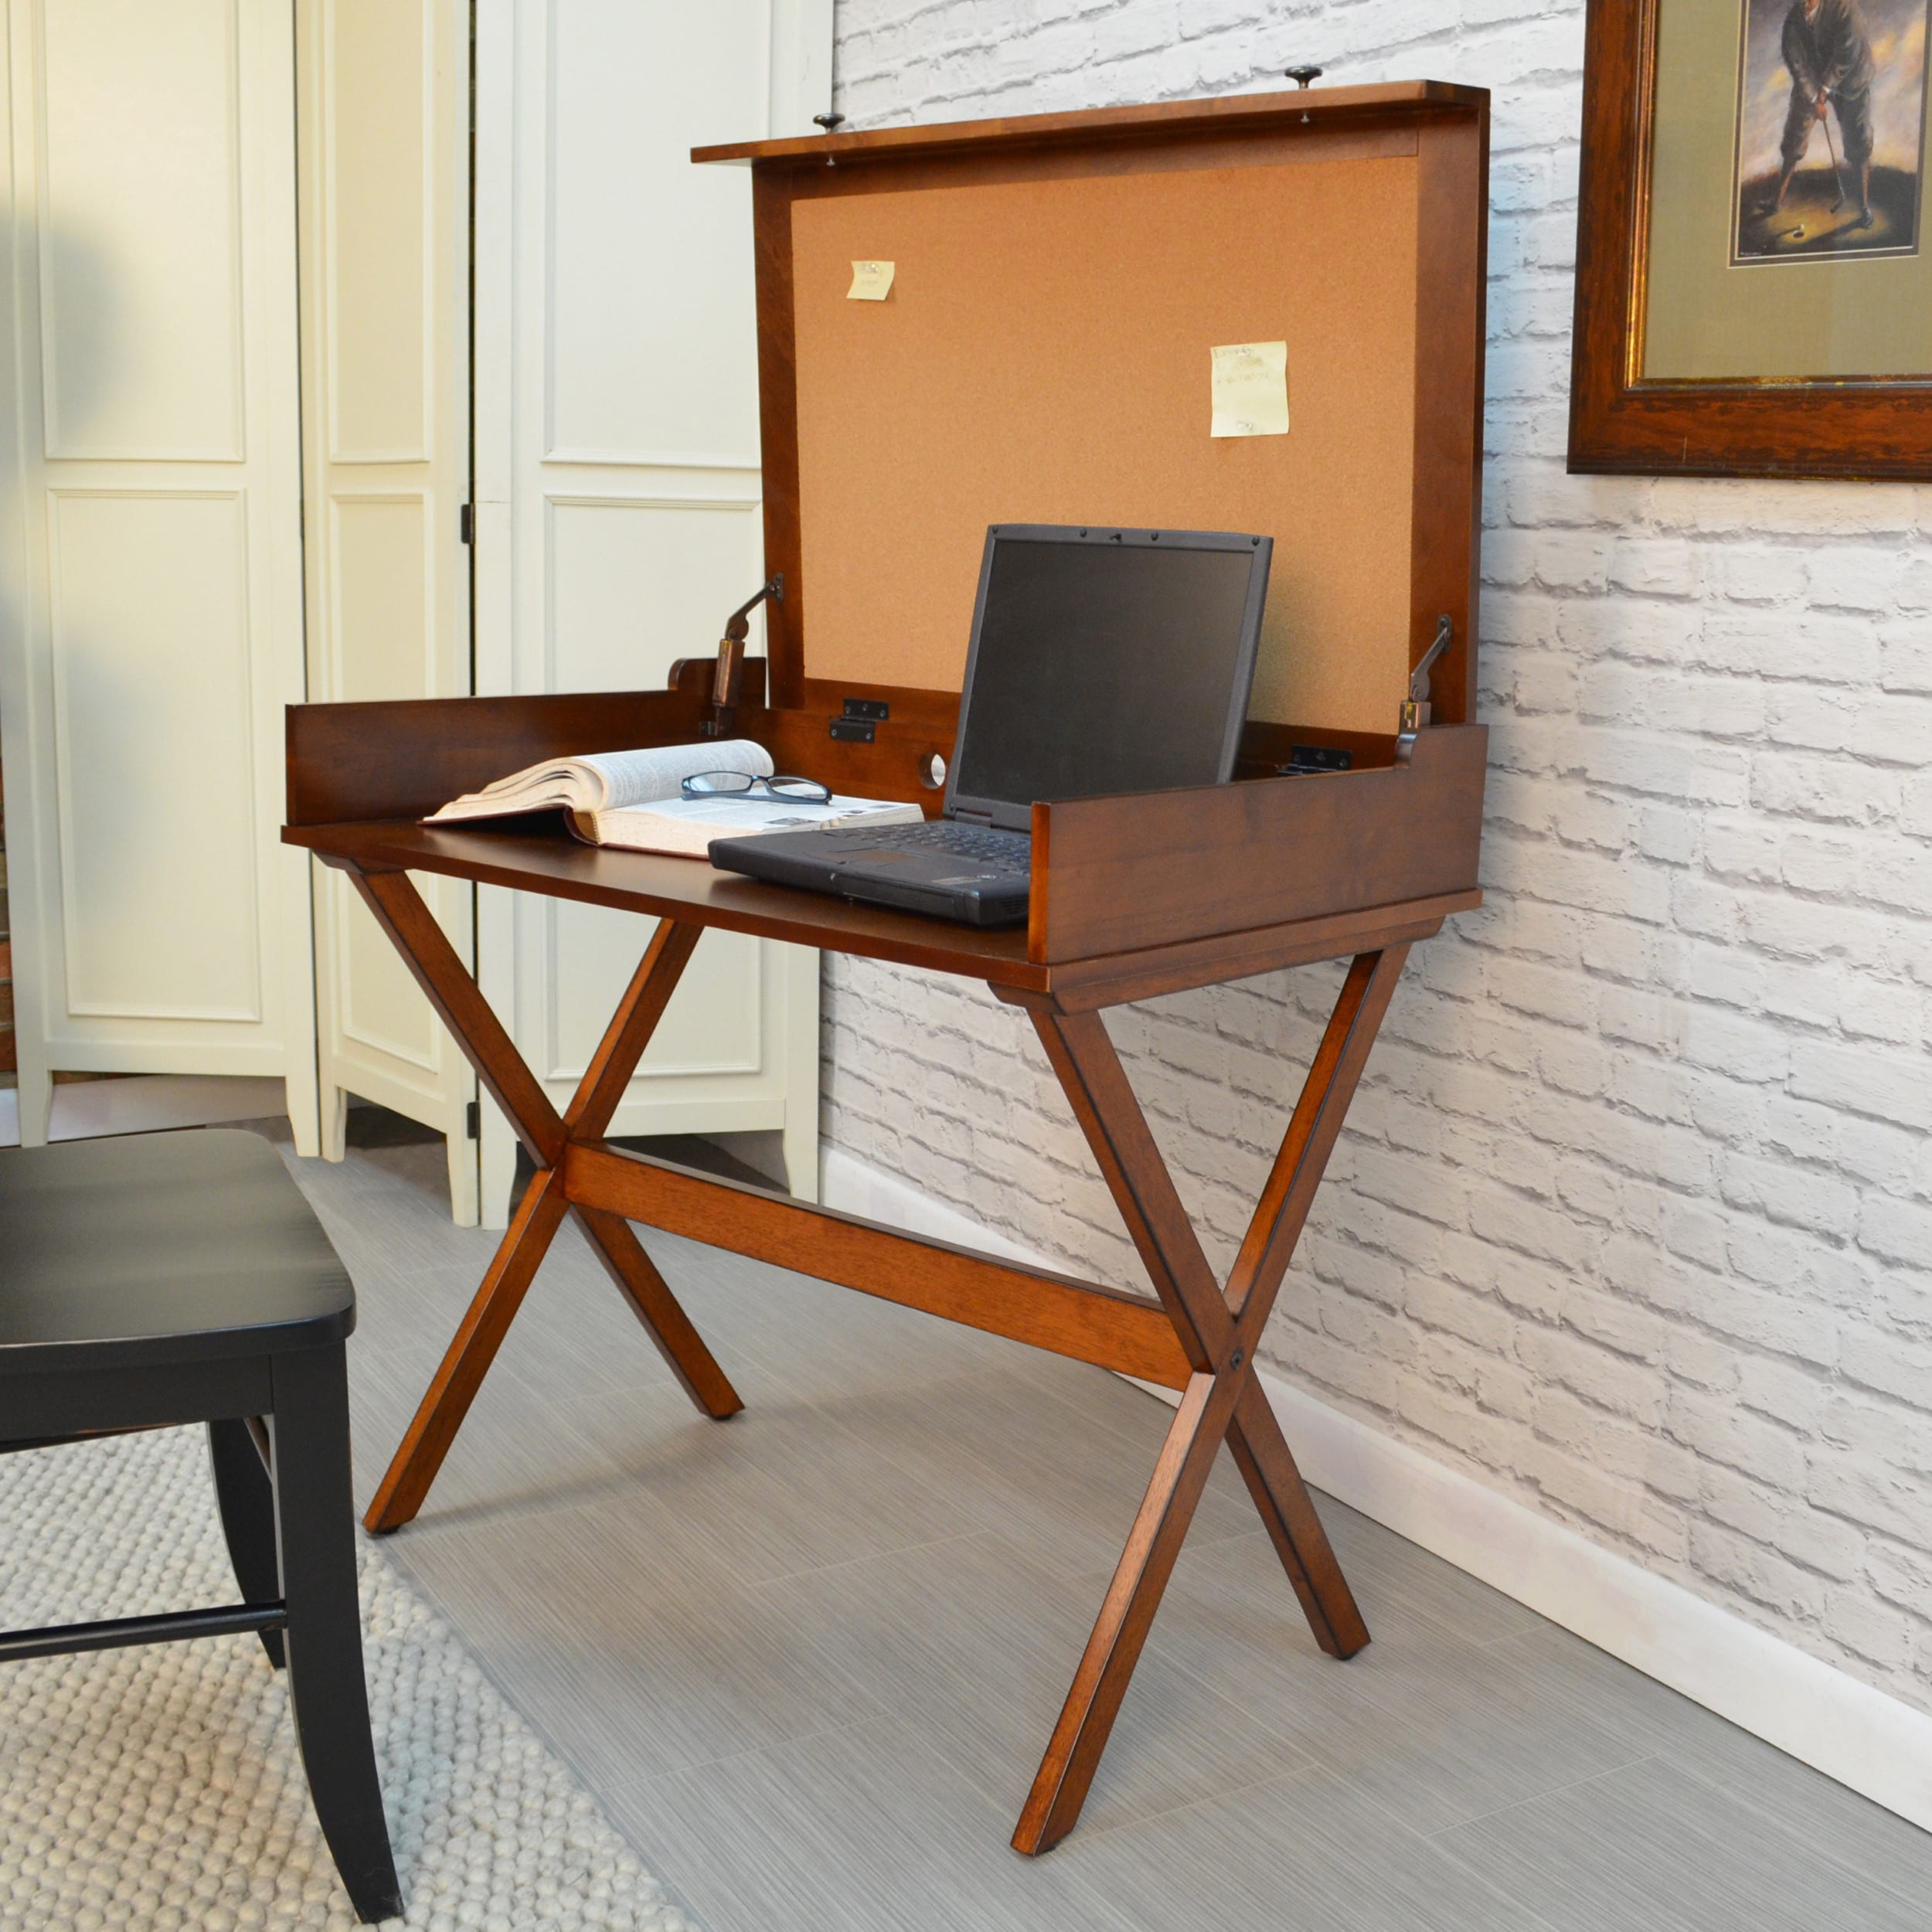 flip top desk. Shop Alice Flip Top Desk - On Sale Free Shipping Today Overstock.com 9998854